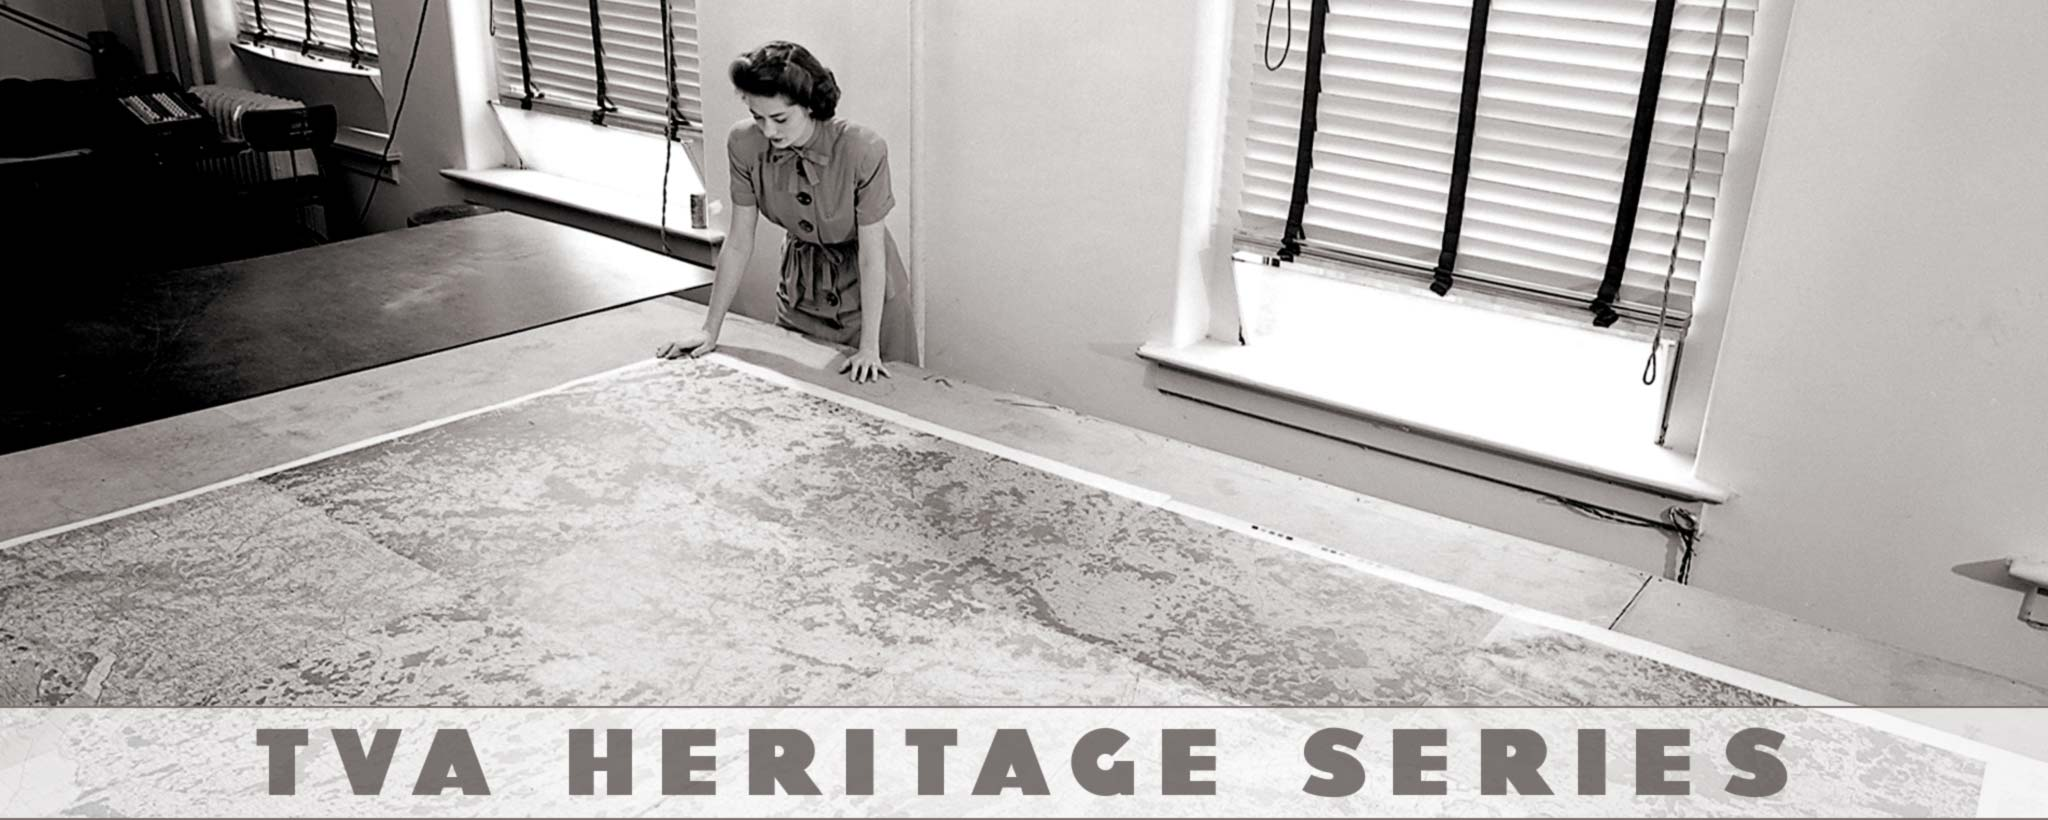 woman with large map